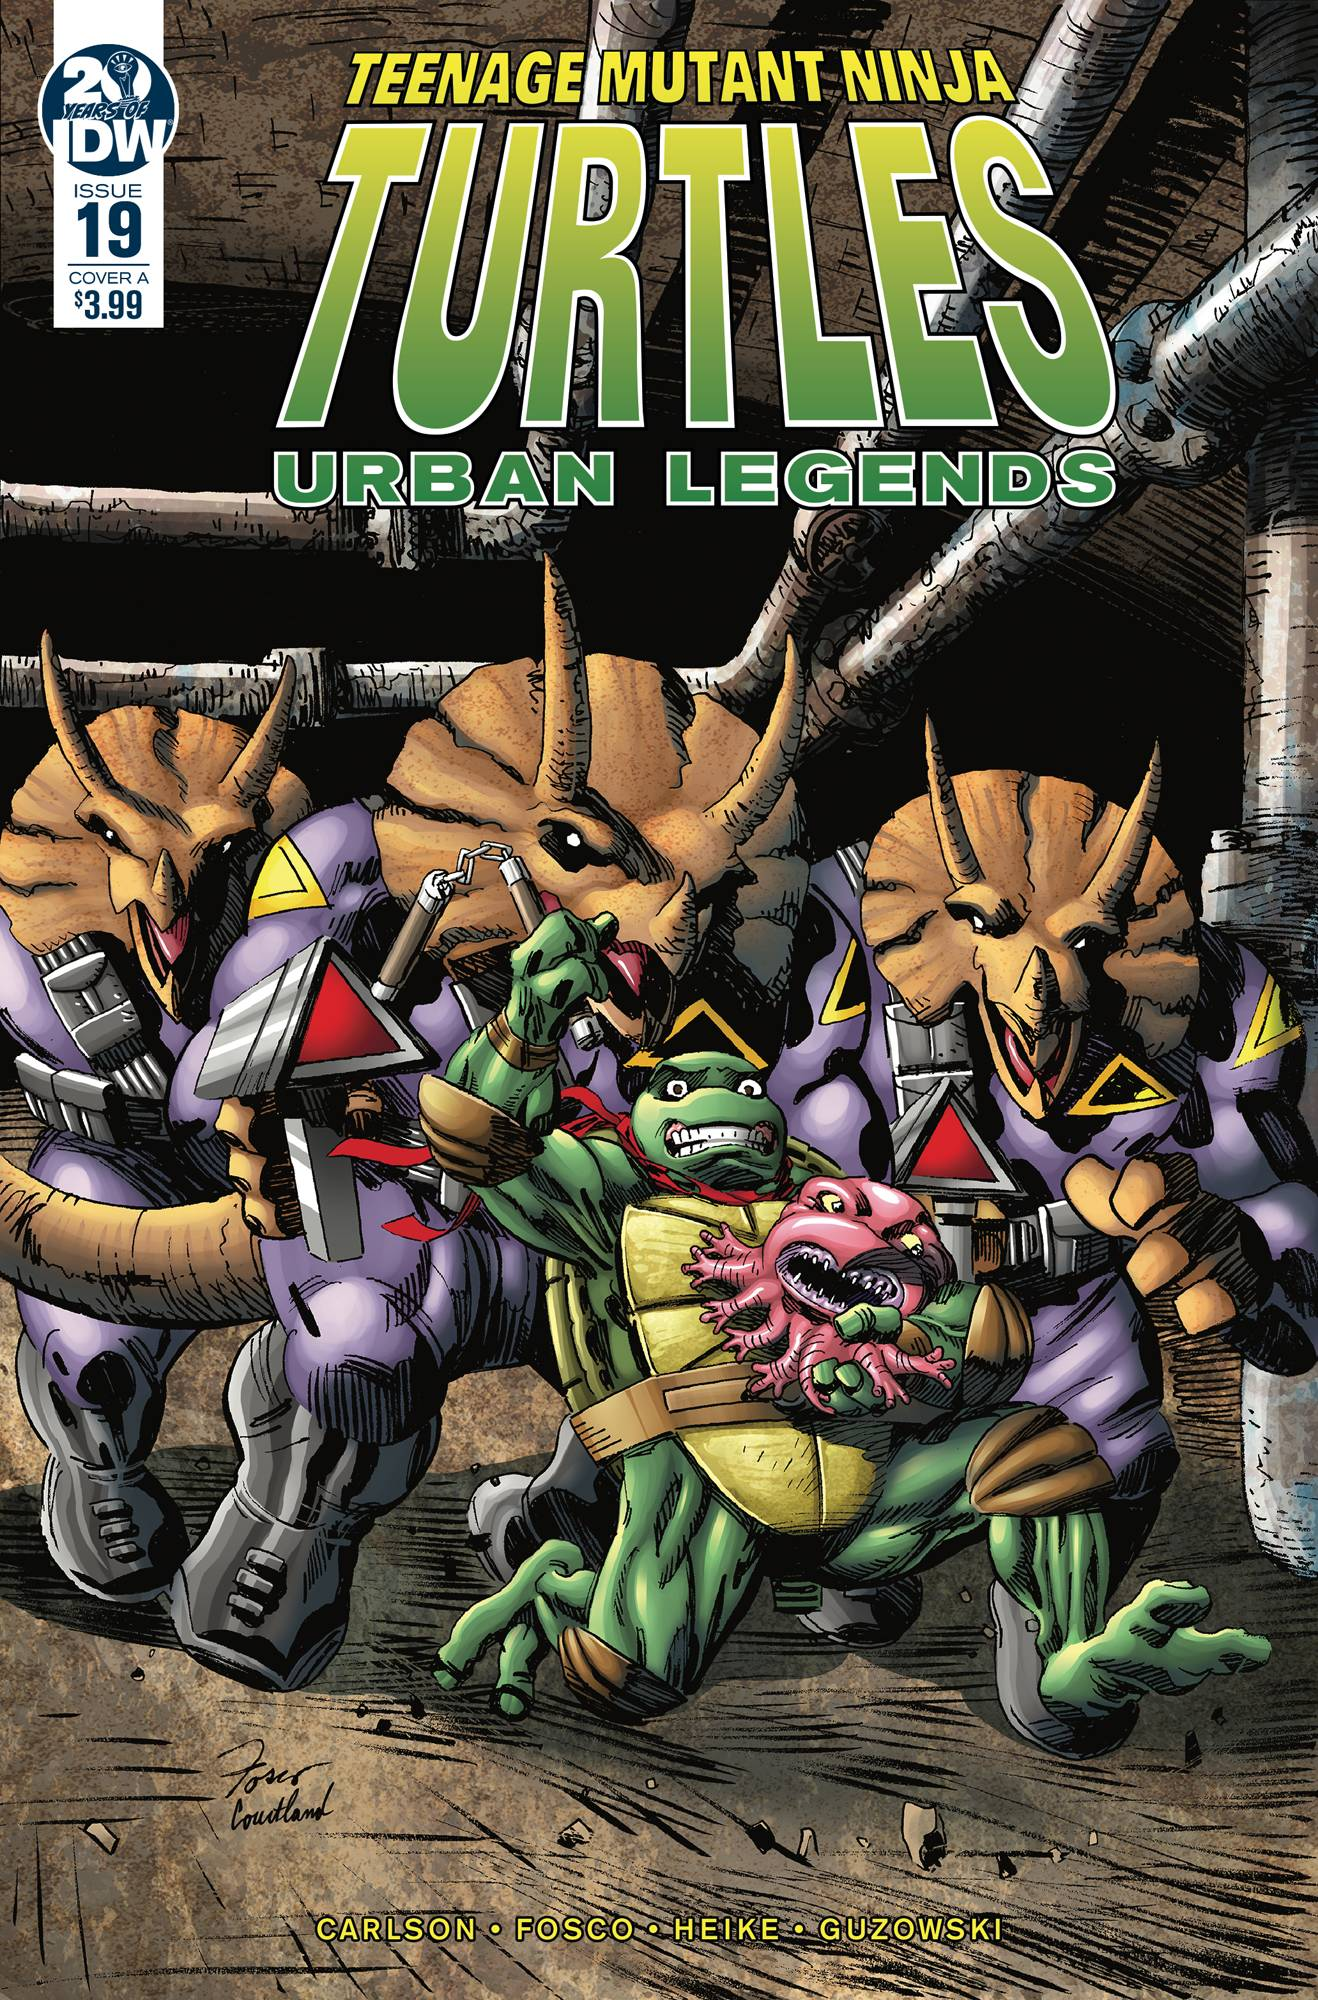 Teenage Mutant Ninja Turtles: Urban Legends #19 (2019)